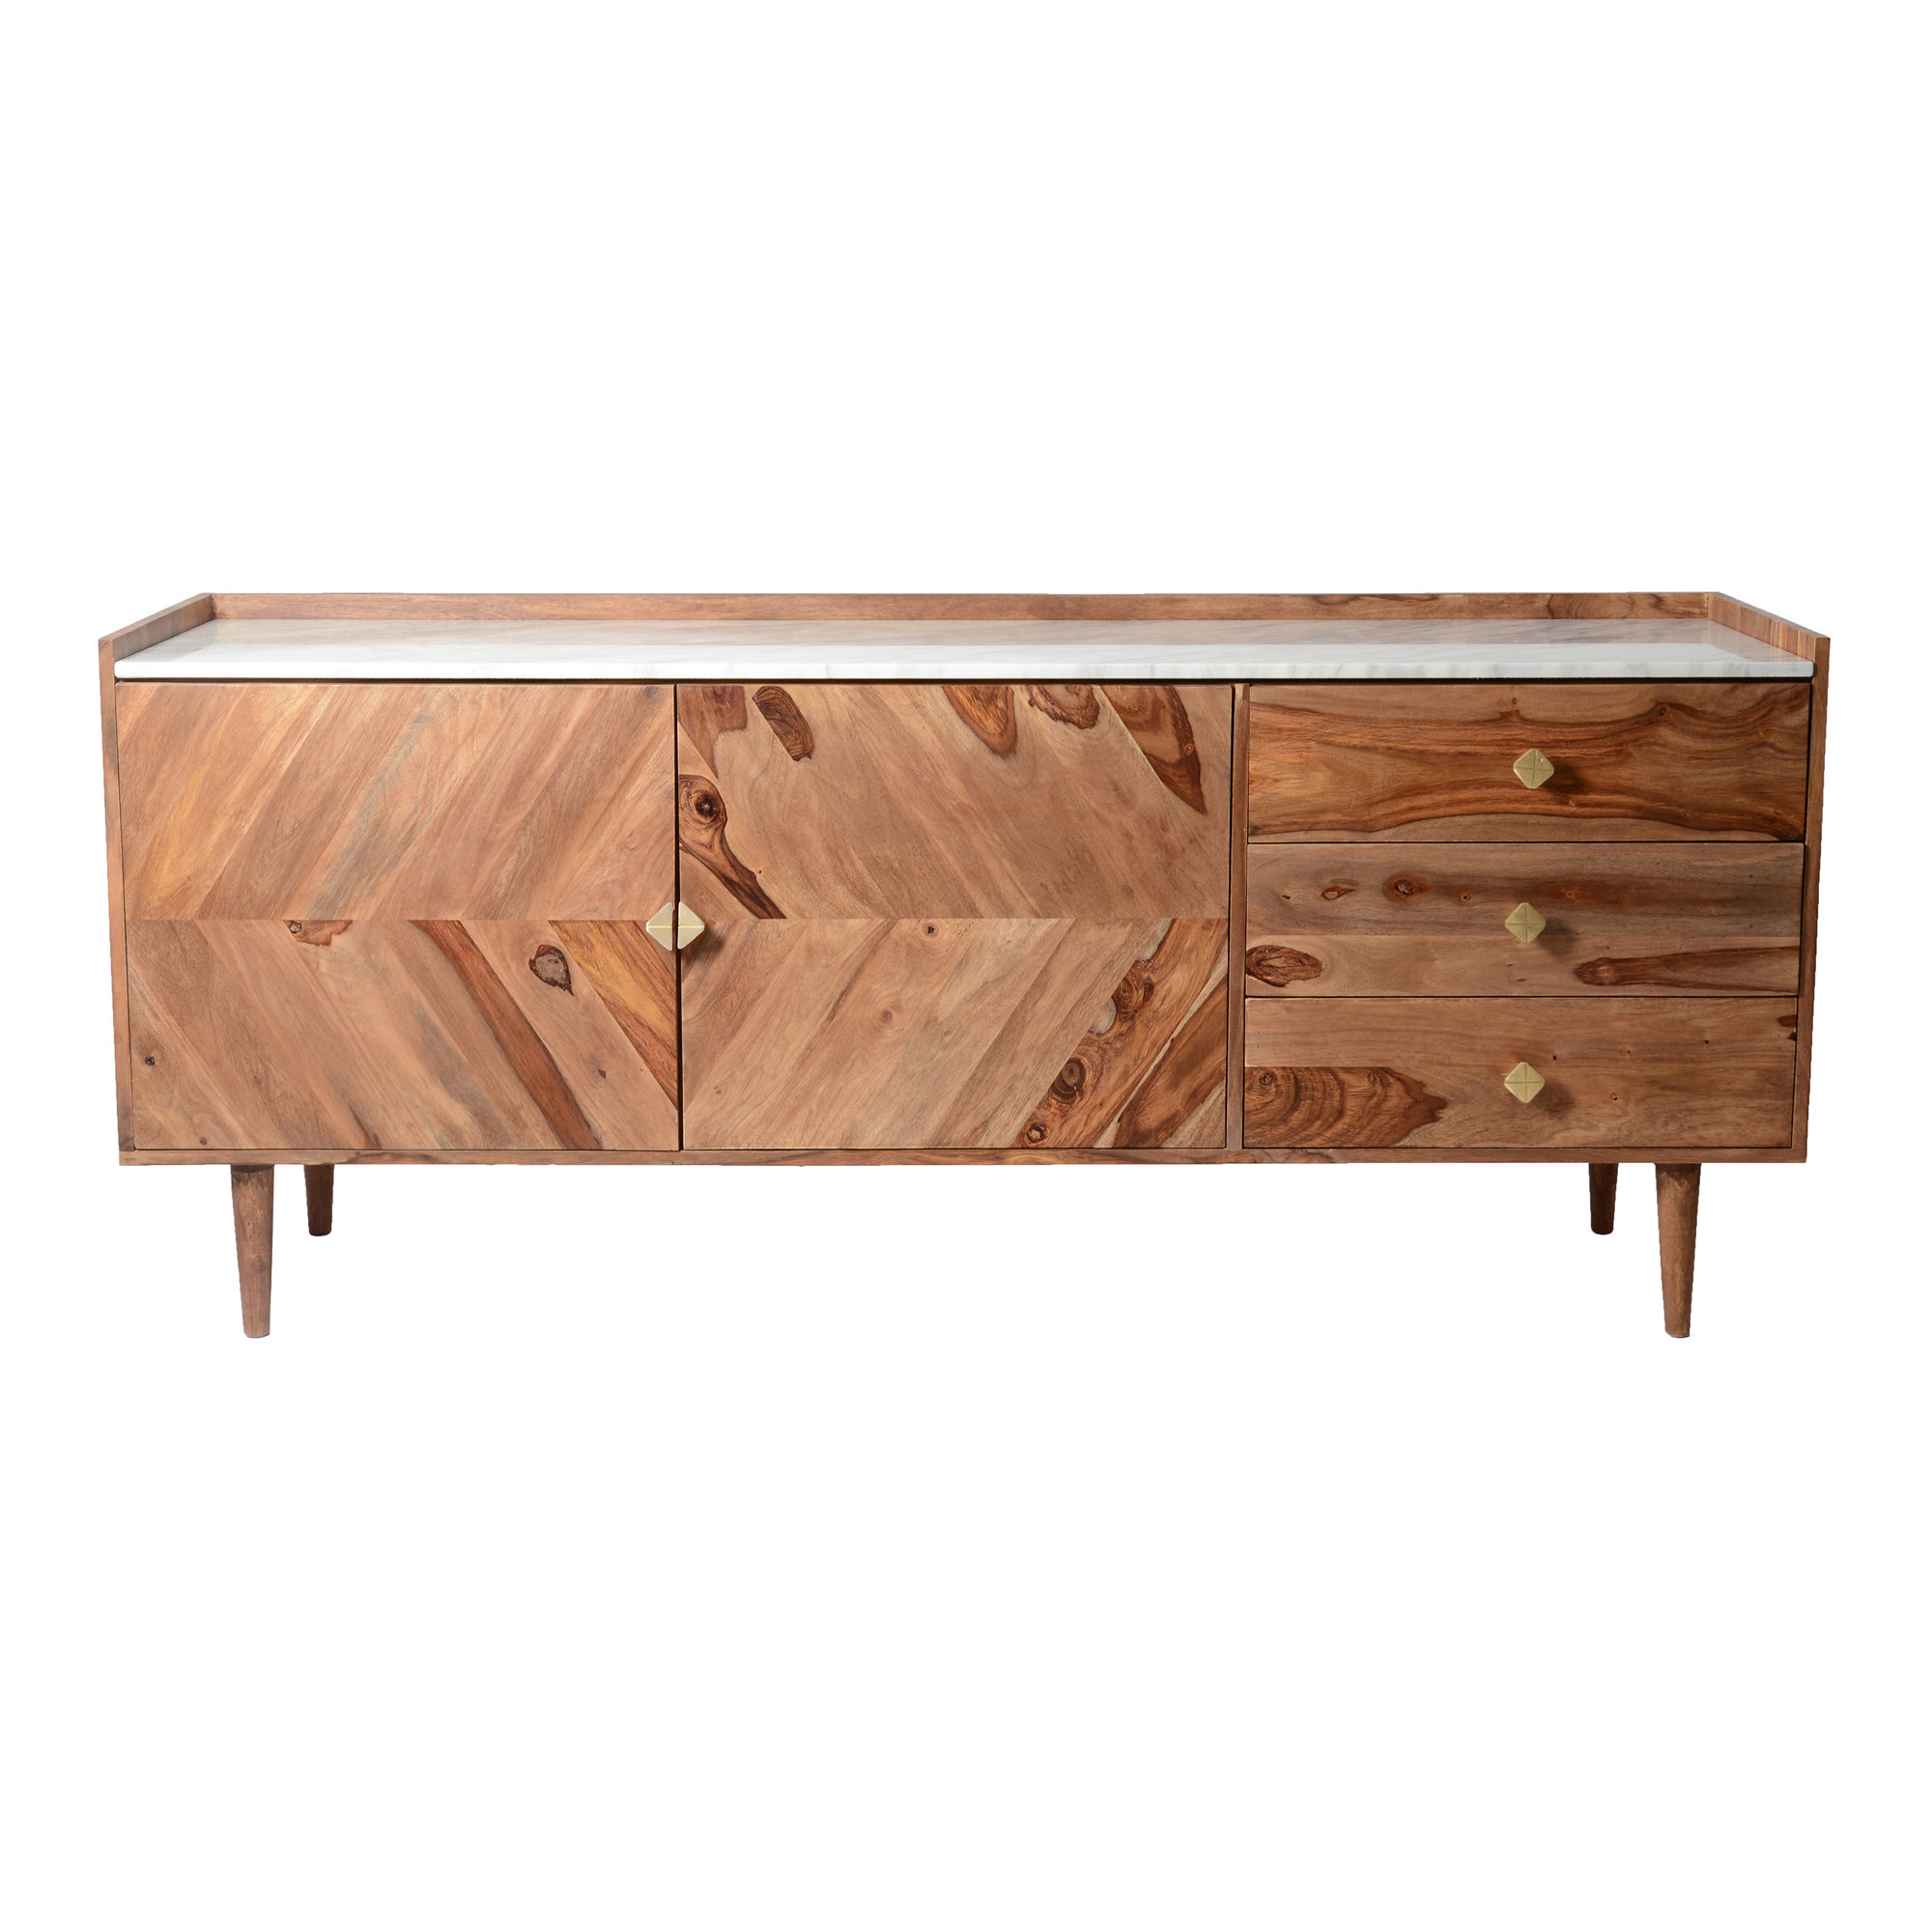 Mid Century Modern Sideboard / Credenza Sideboards & Buffets Pertaining To Most Recent Longley Sideboards (View 13 of 20)